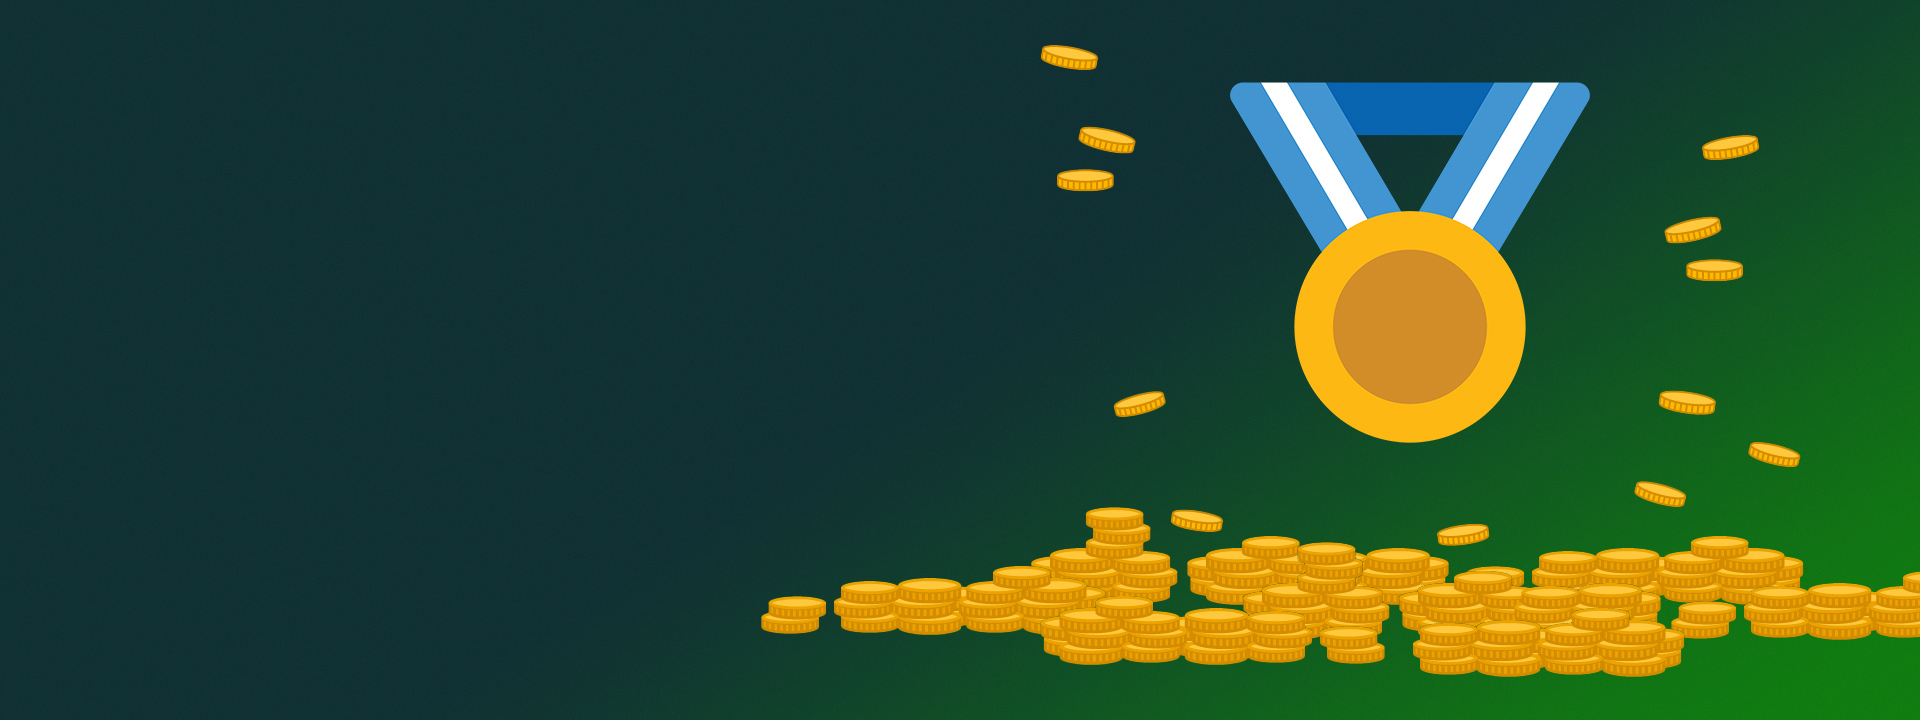 A gold medal and a pile of gold coins